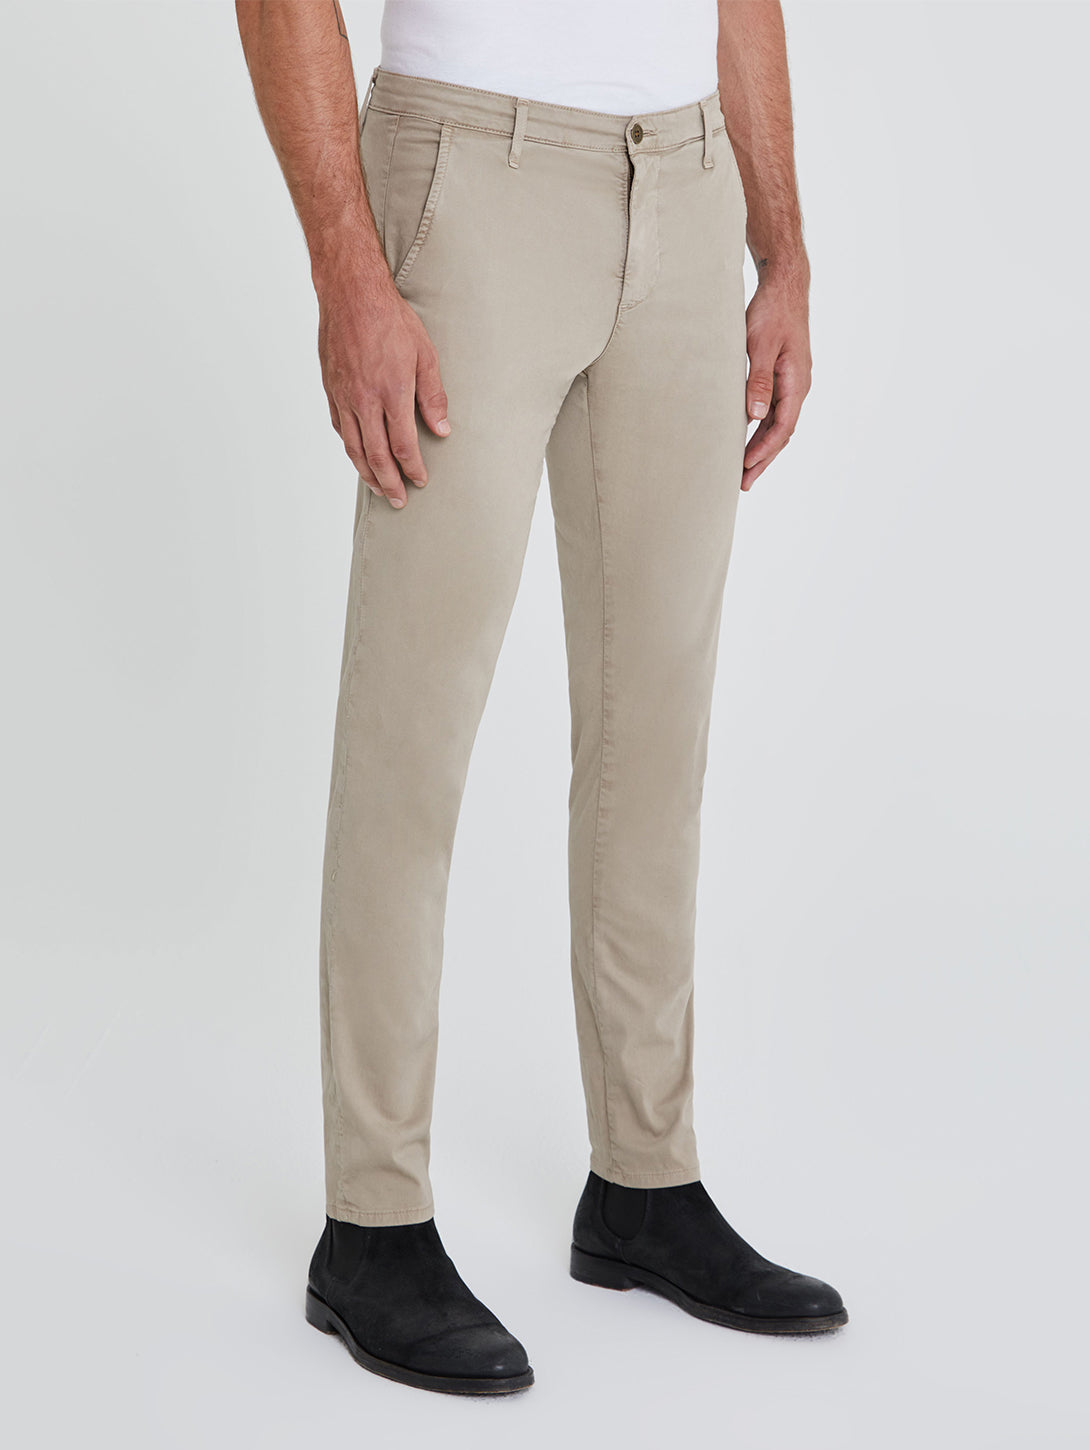 Jamison Skinny Pant - Wild Taupe-AG Jeans-Over the Rainbow